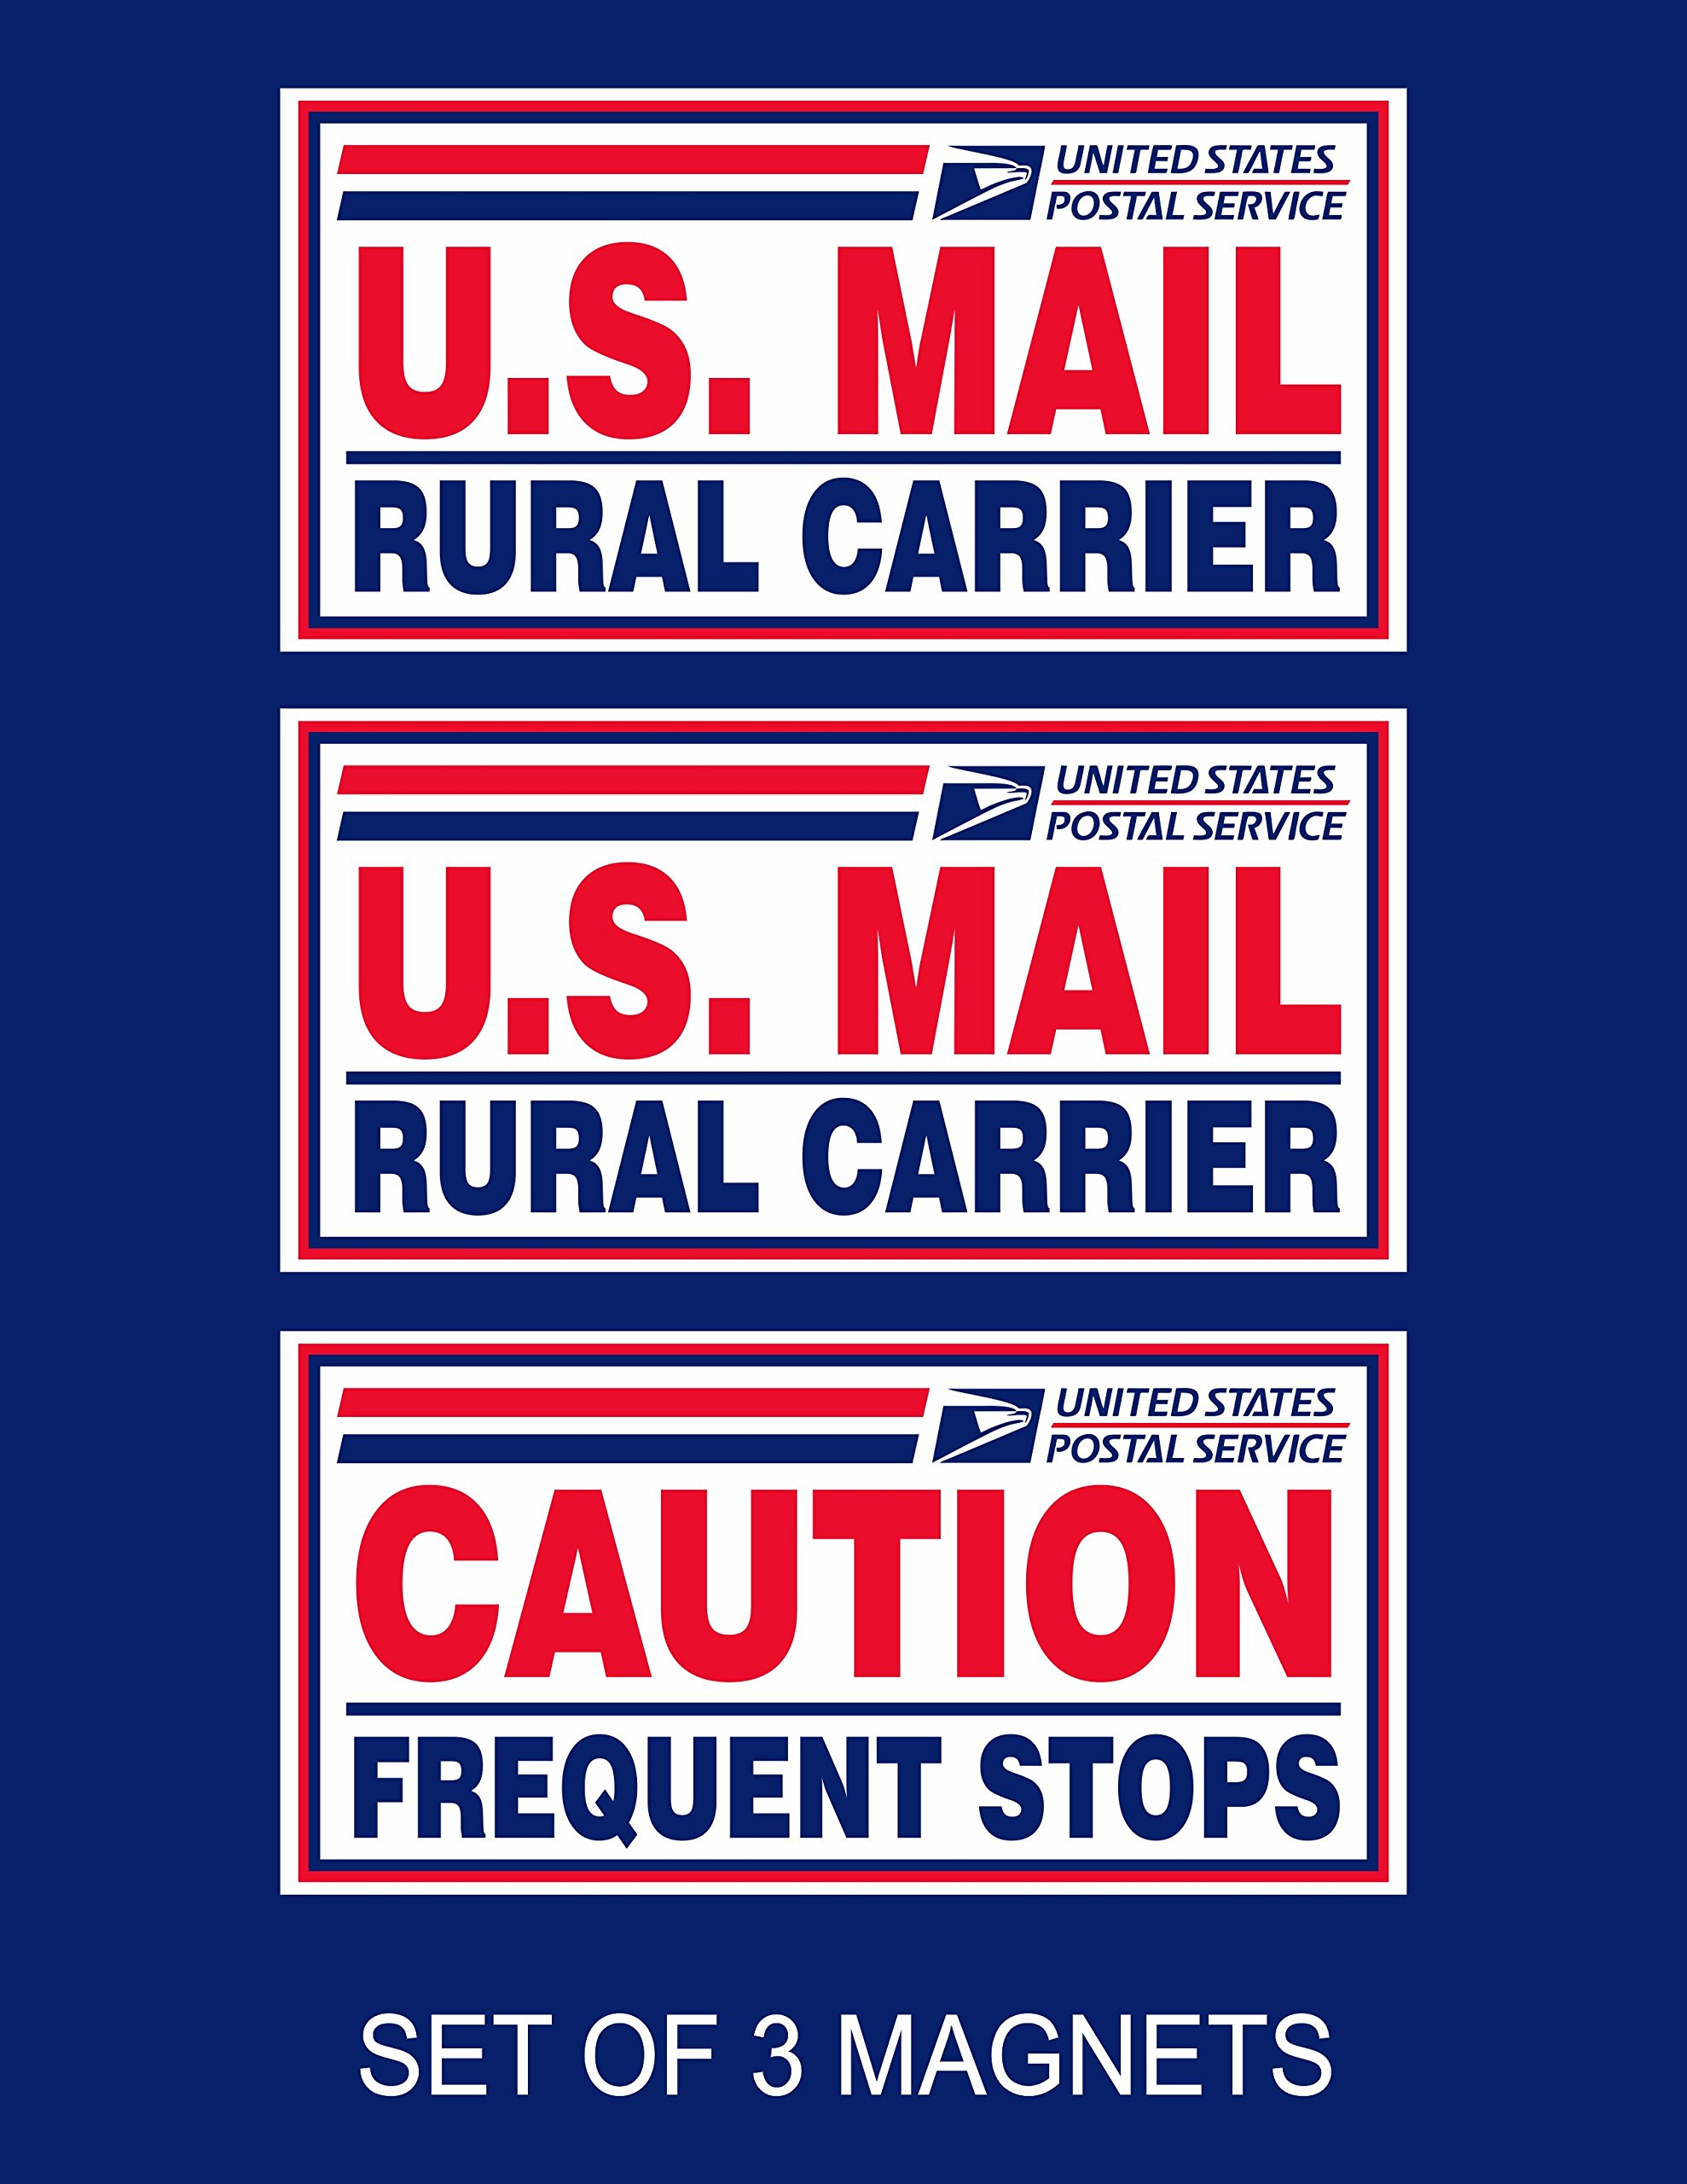 Mail Carrier Vehicles For Sale >> Cheap Rural Mail Carrier Vehicles For Sale Find Rural Mail Carrier